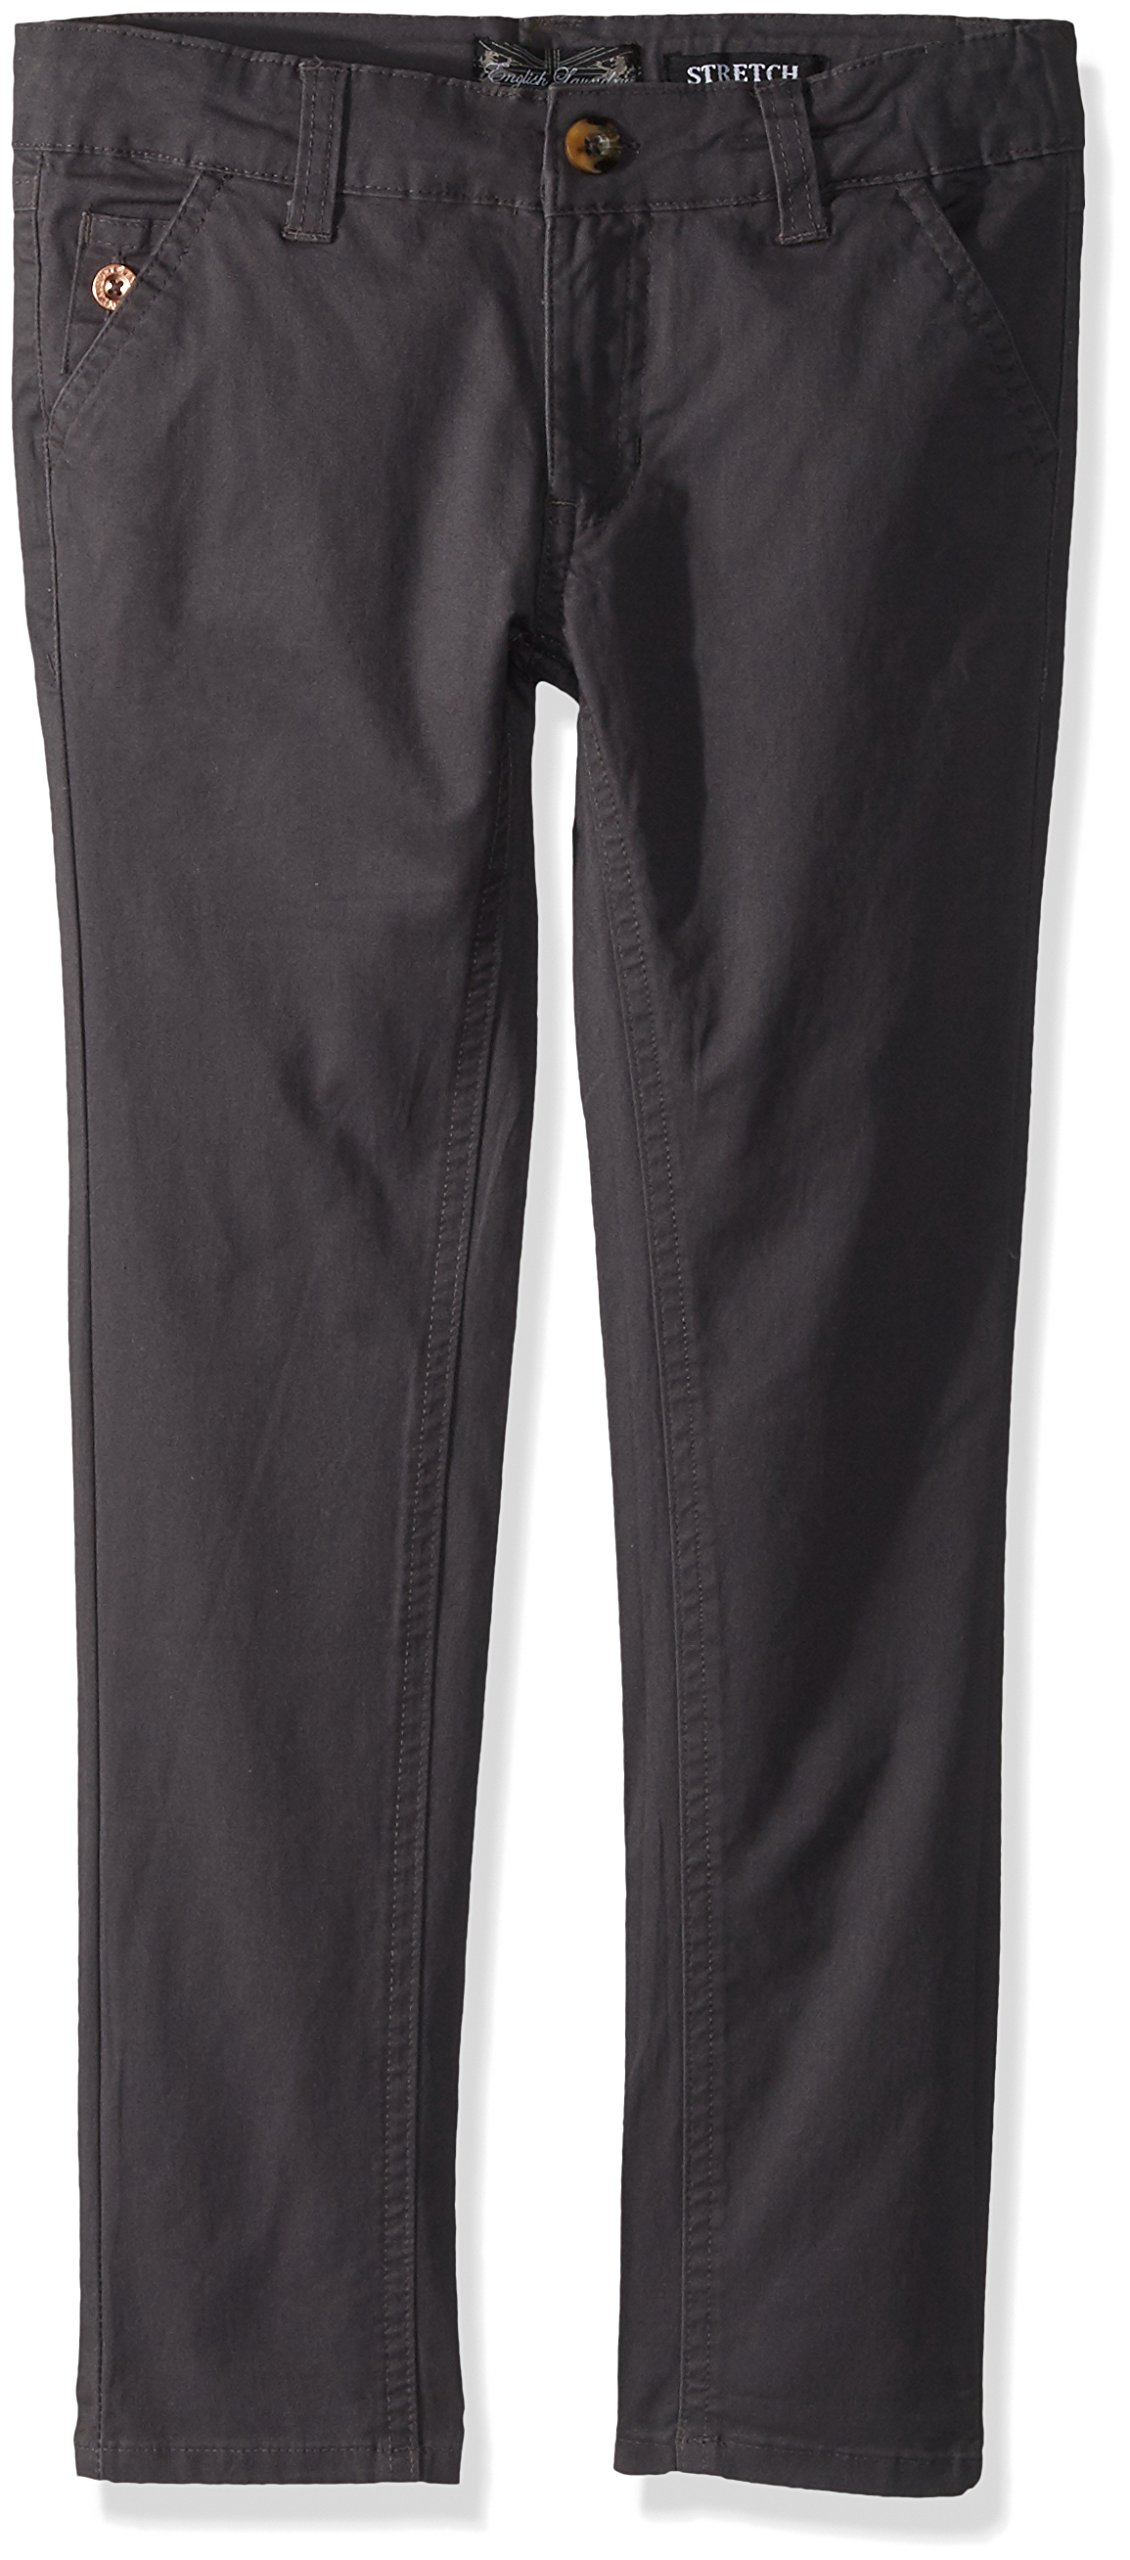 English Laundry Little Boys' Stretch Twill Pant (More Styles Available), Charcoal, 5